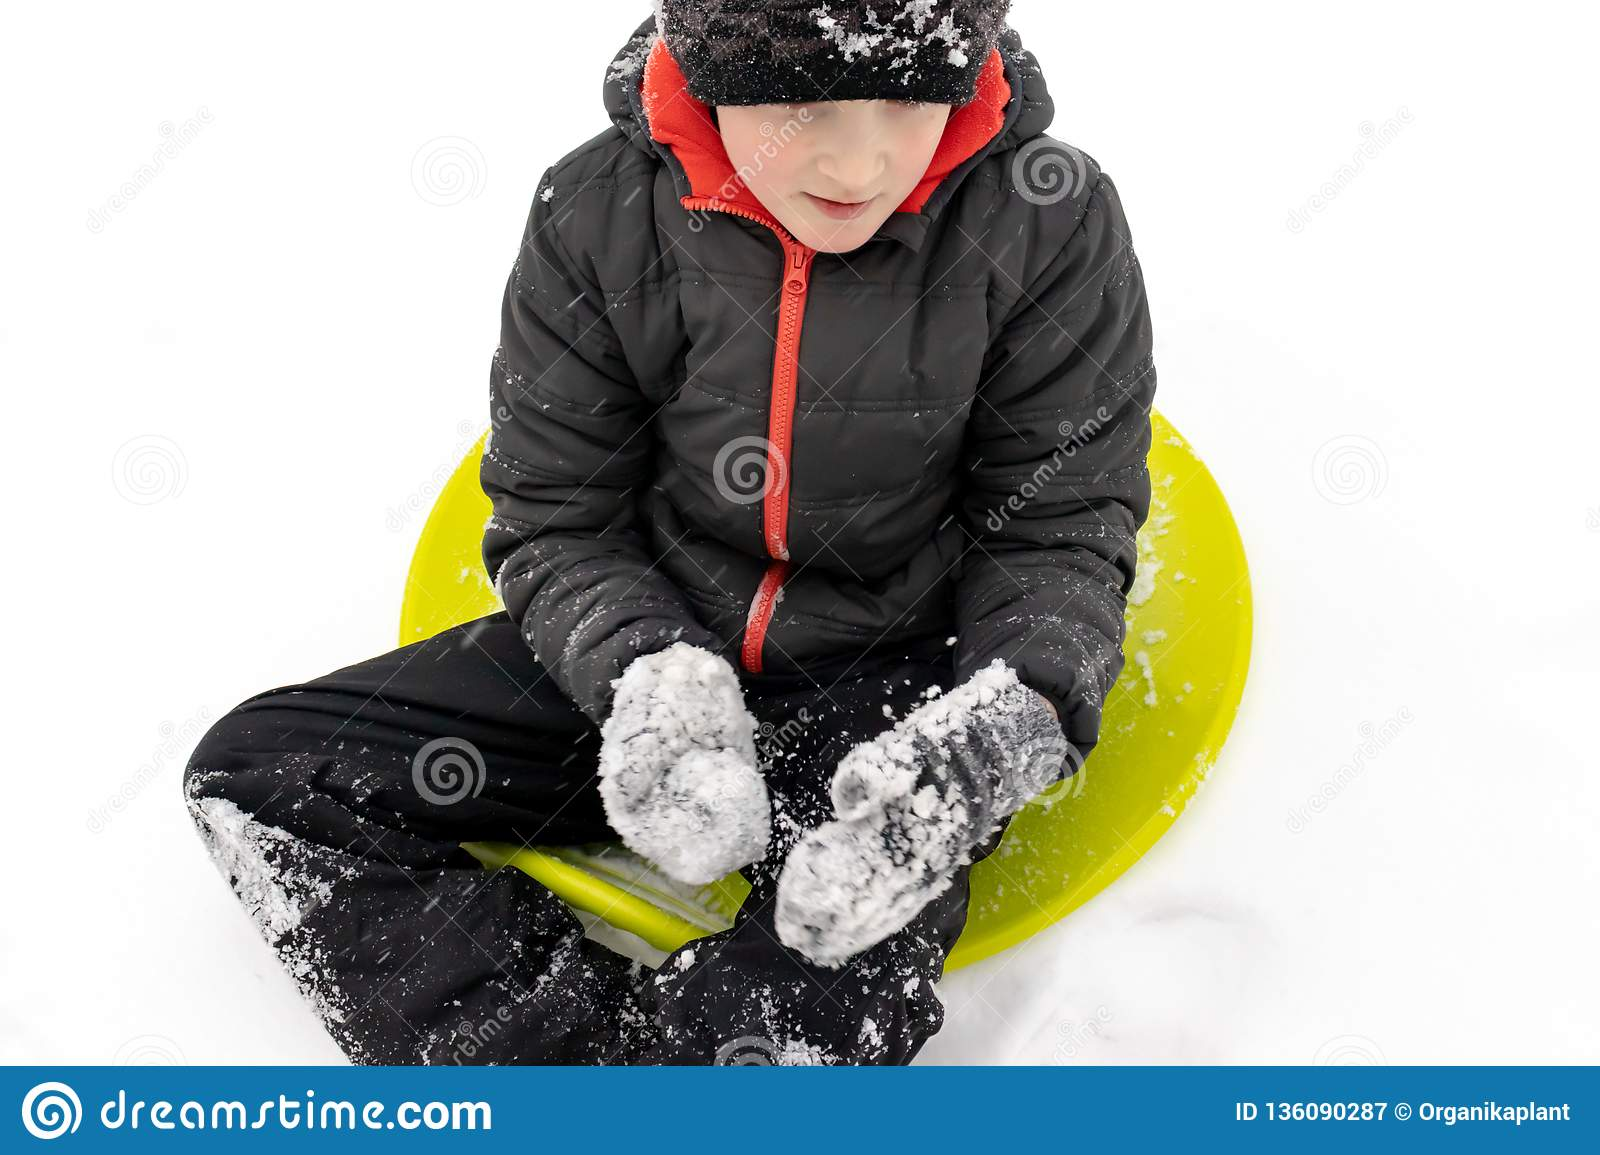 A boy of seven years old sitting on a green plastic saucer sled ready to ride a slide. Concept of winter activities, recreation